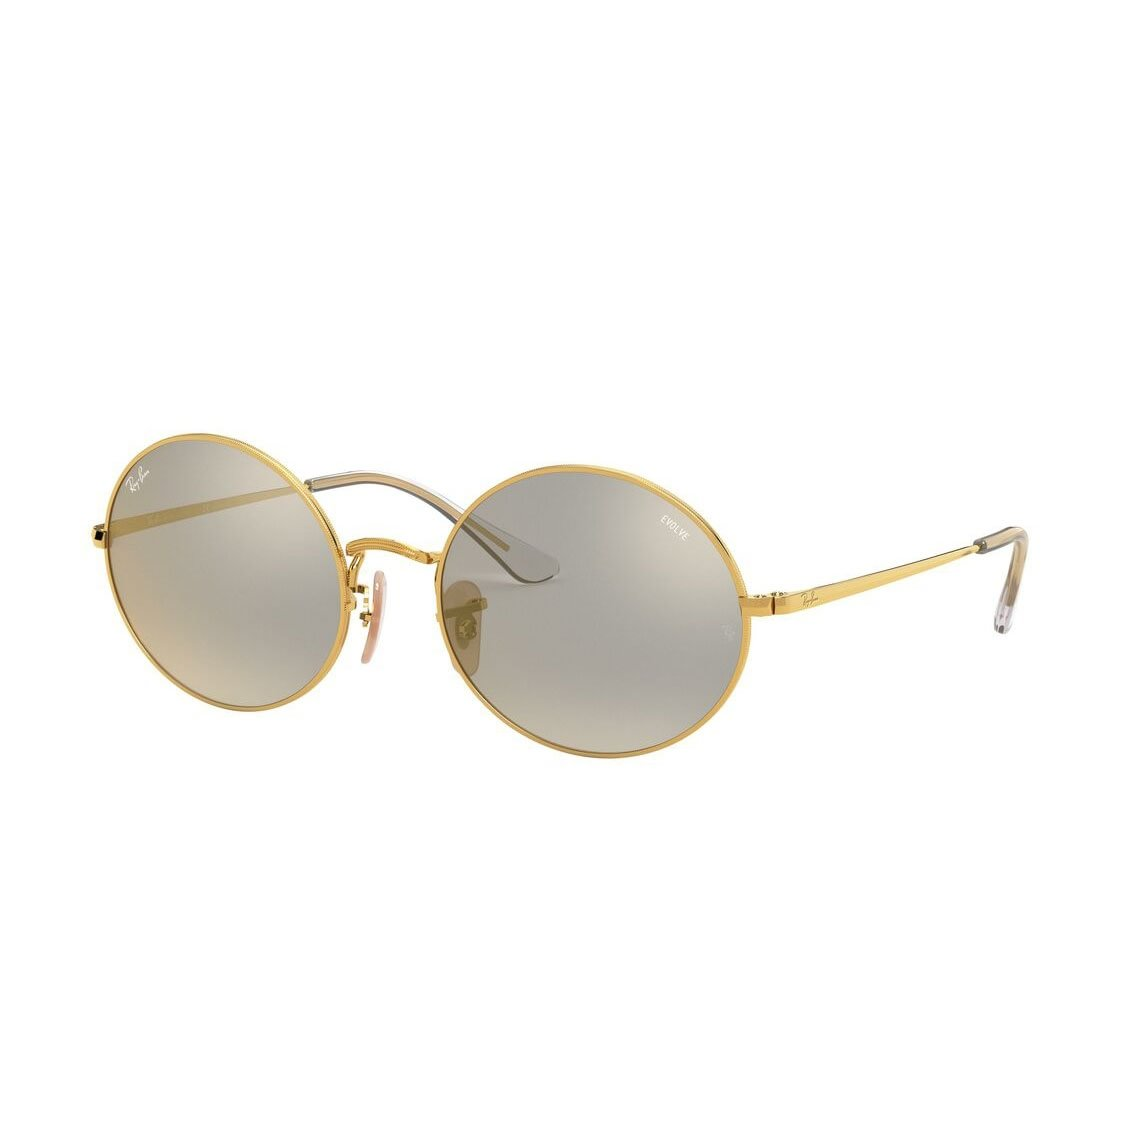 Ray-Ban Oval 1970 Mirror Evolve RB1970 001/B3 54